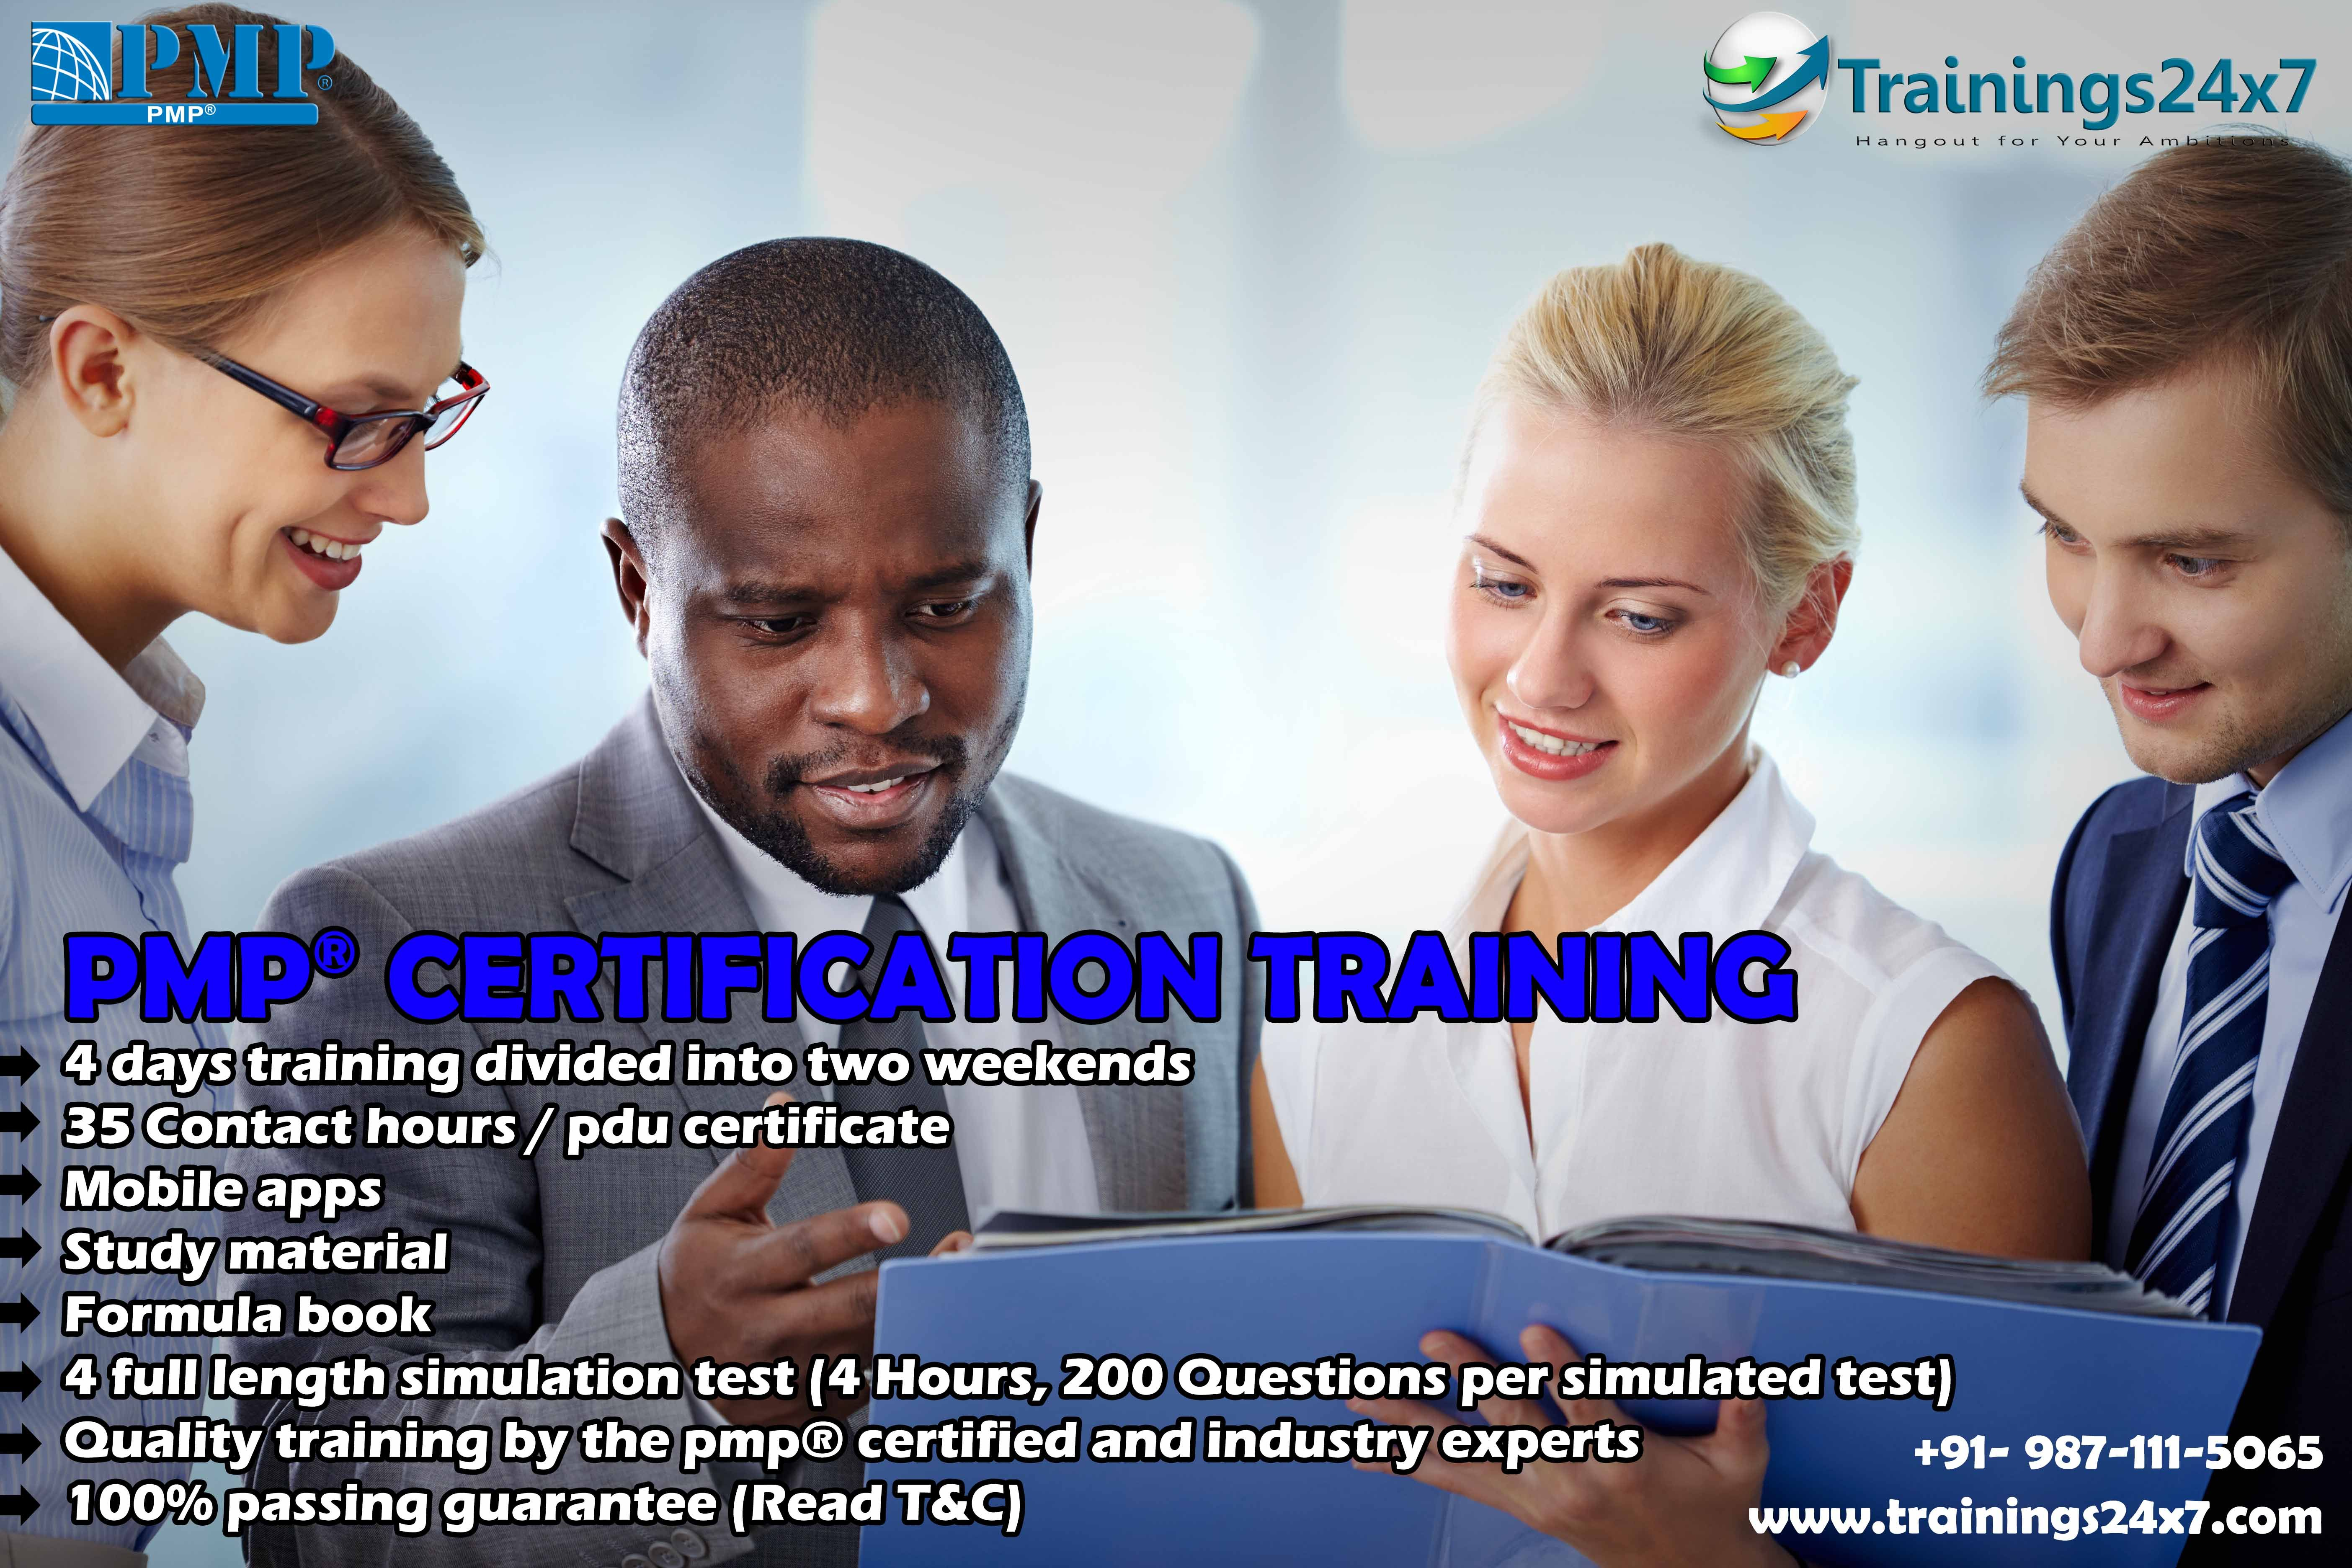 Pmp stands for project management professional certification exam pmp stands for project management professional certification exam pmp is one of the most respected and globally recognized certification is offe 1betcityfo Images